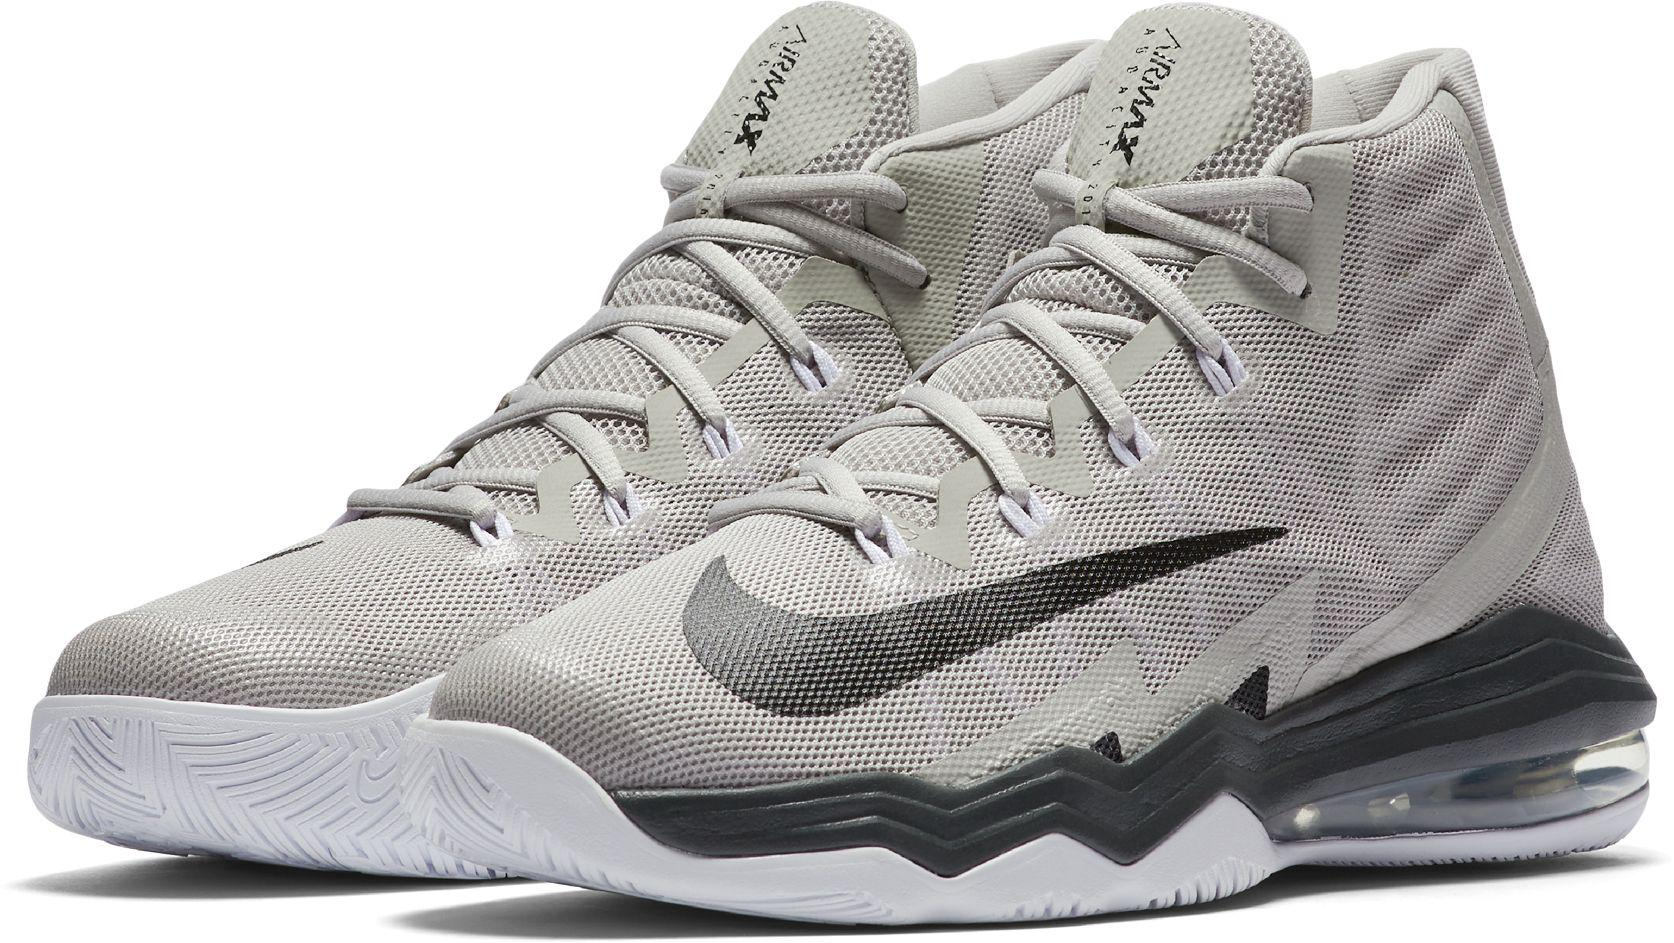 Lyst Nike Air Max Audacity 2016 Basketball Shoes in Gray